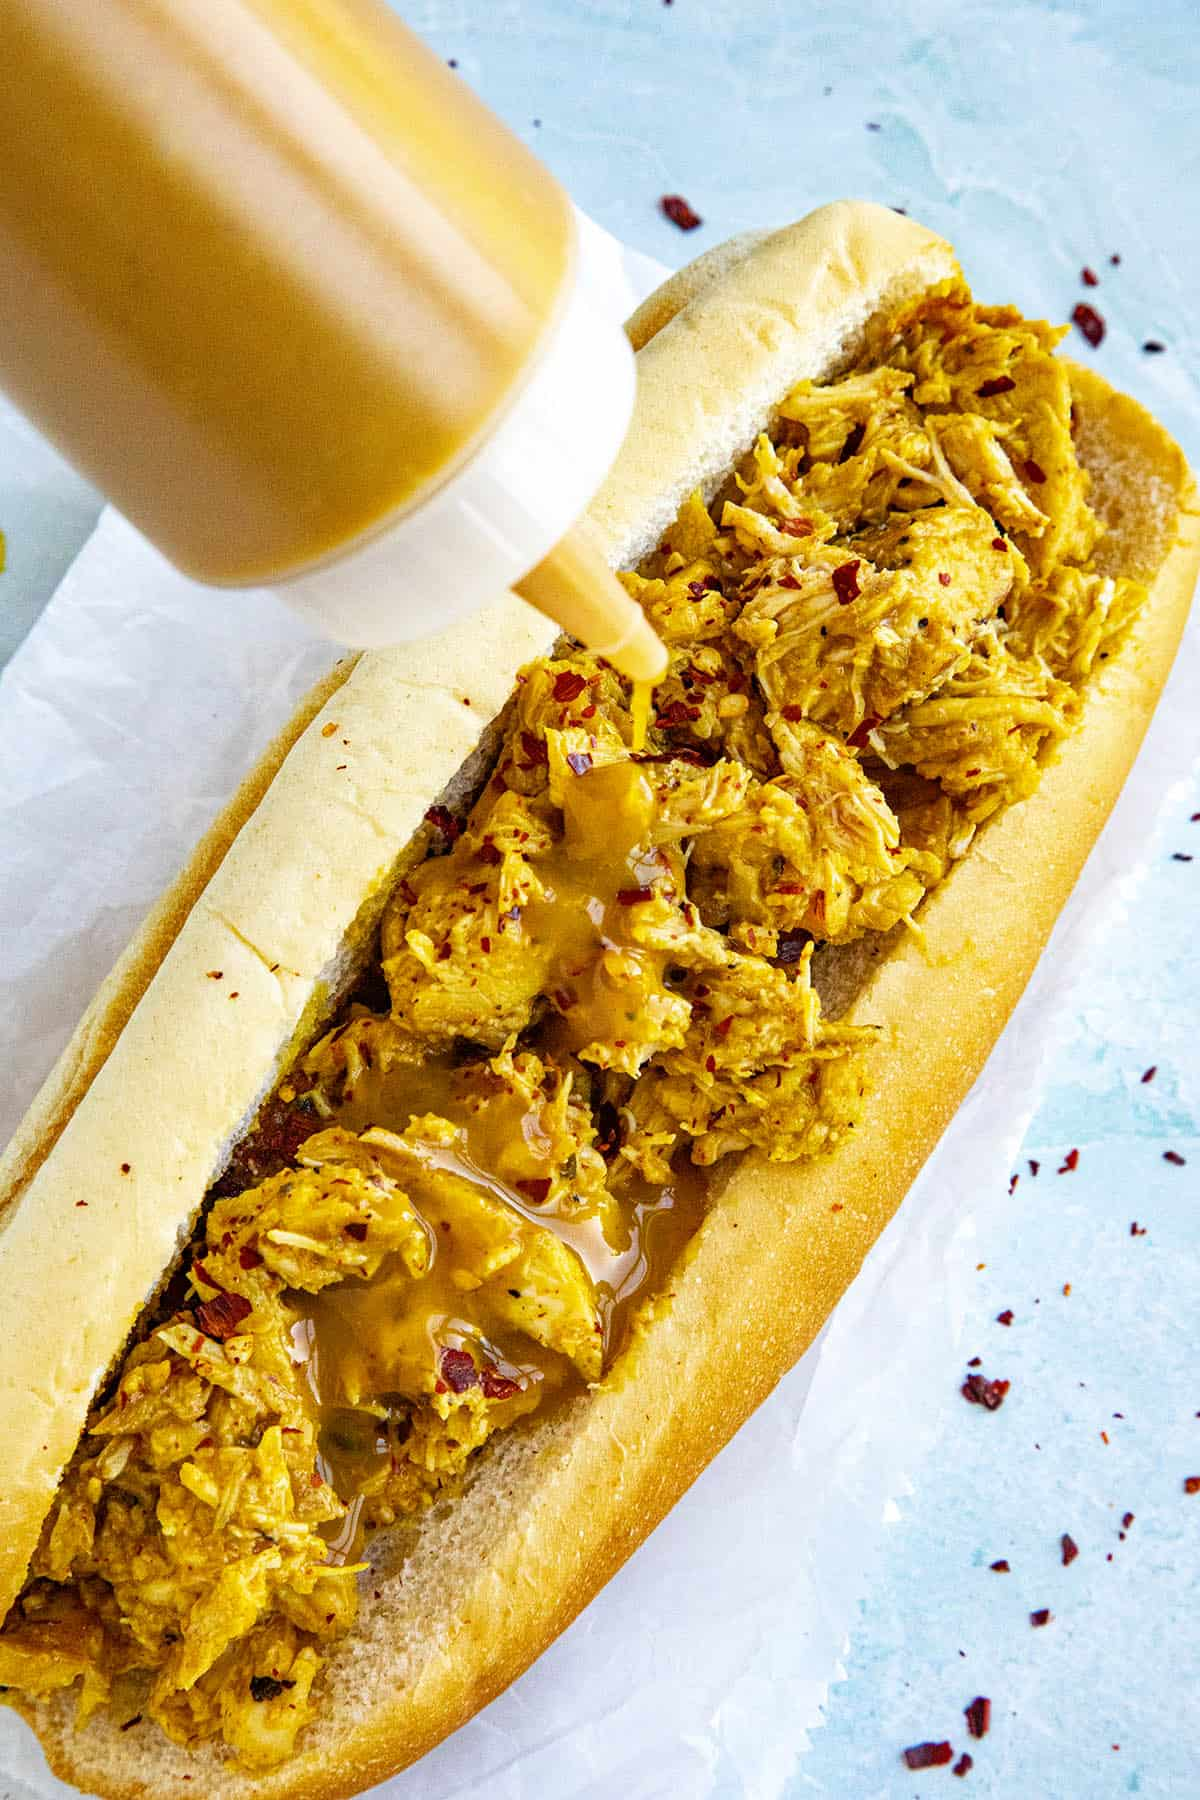 Carolina Mustard BBQ Sauce being squirted onto a pulled chicken sandwich